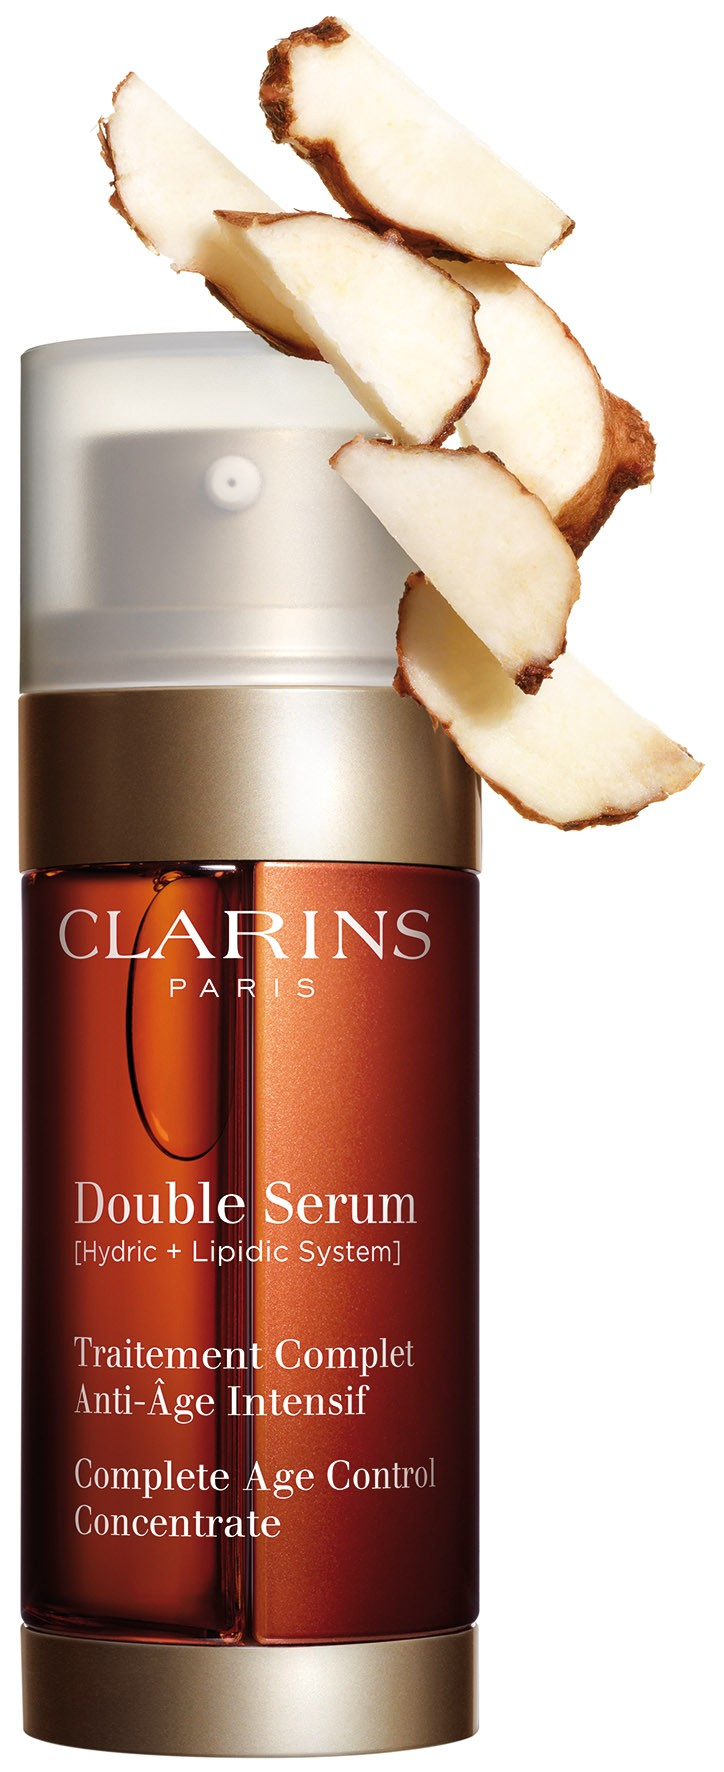 Double_Serum_Stillife+Cangzhu